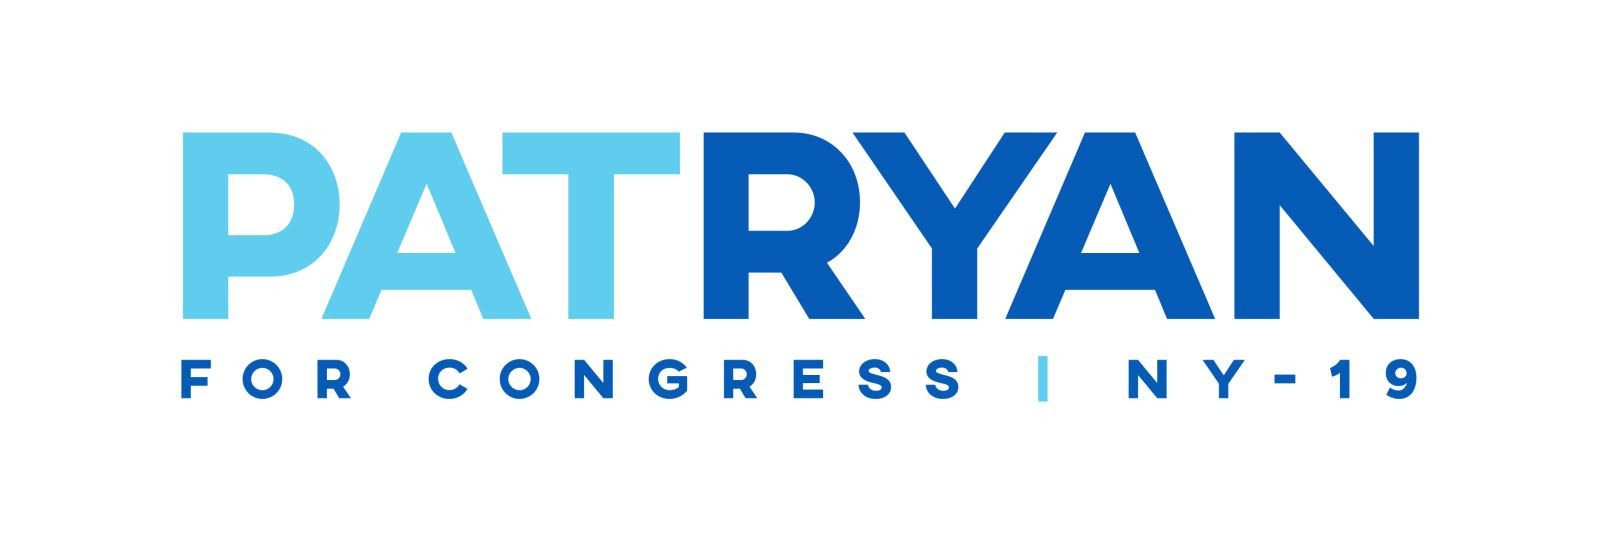 Pat Ryan for Congress